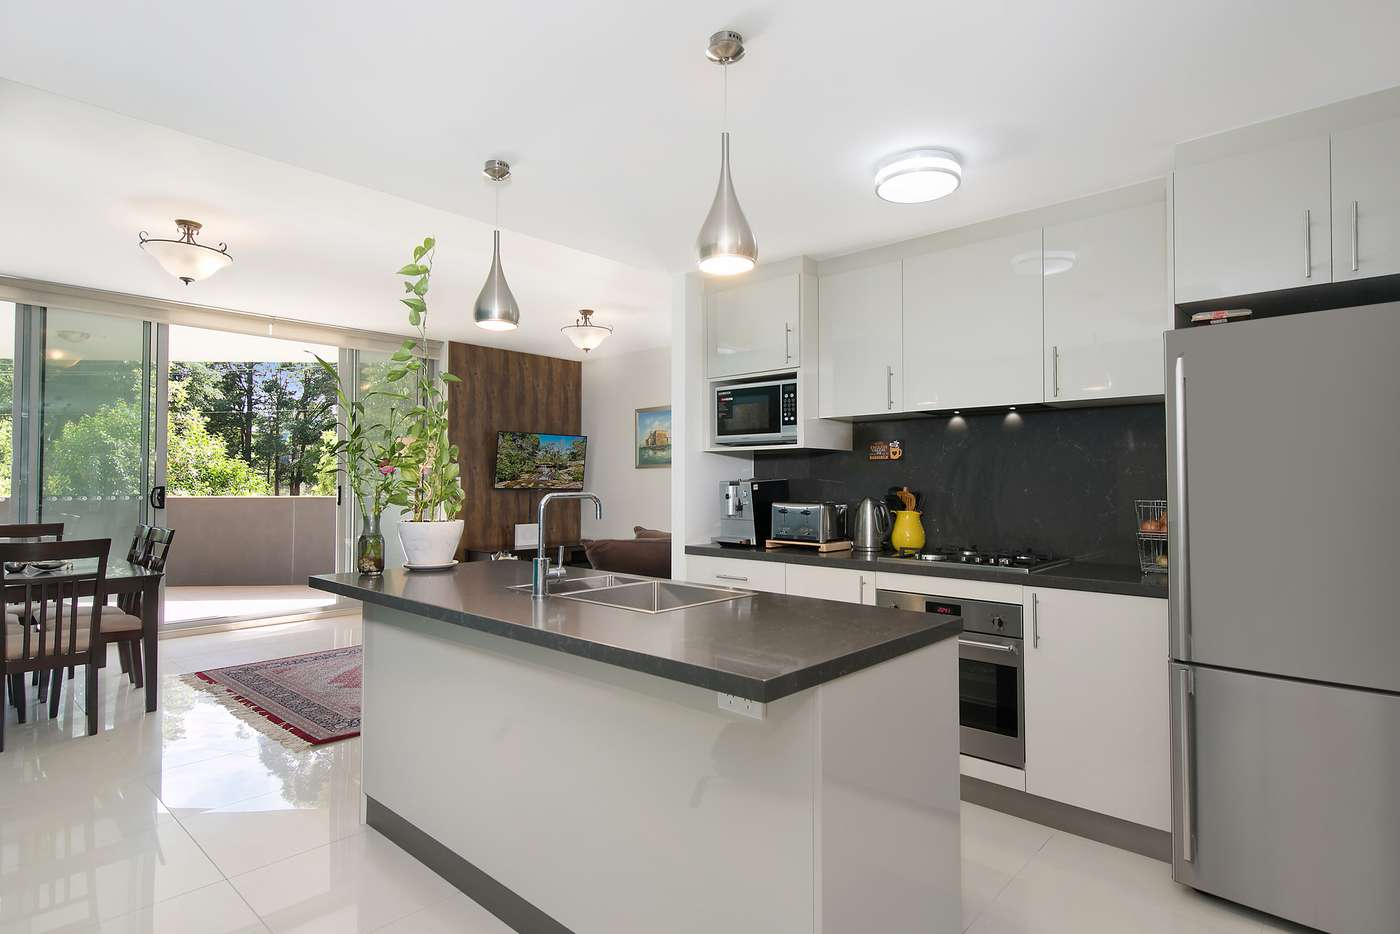 Main view of Homely apartment listing, 11/2-4 Newhaven Place, St Ives NSW 2075